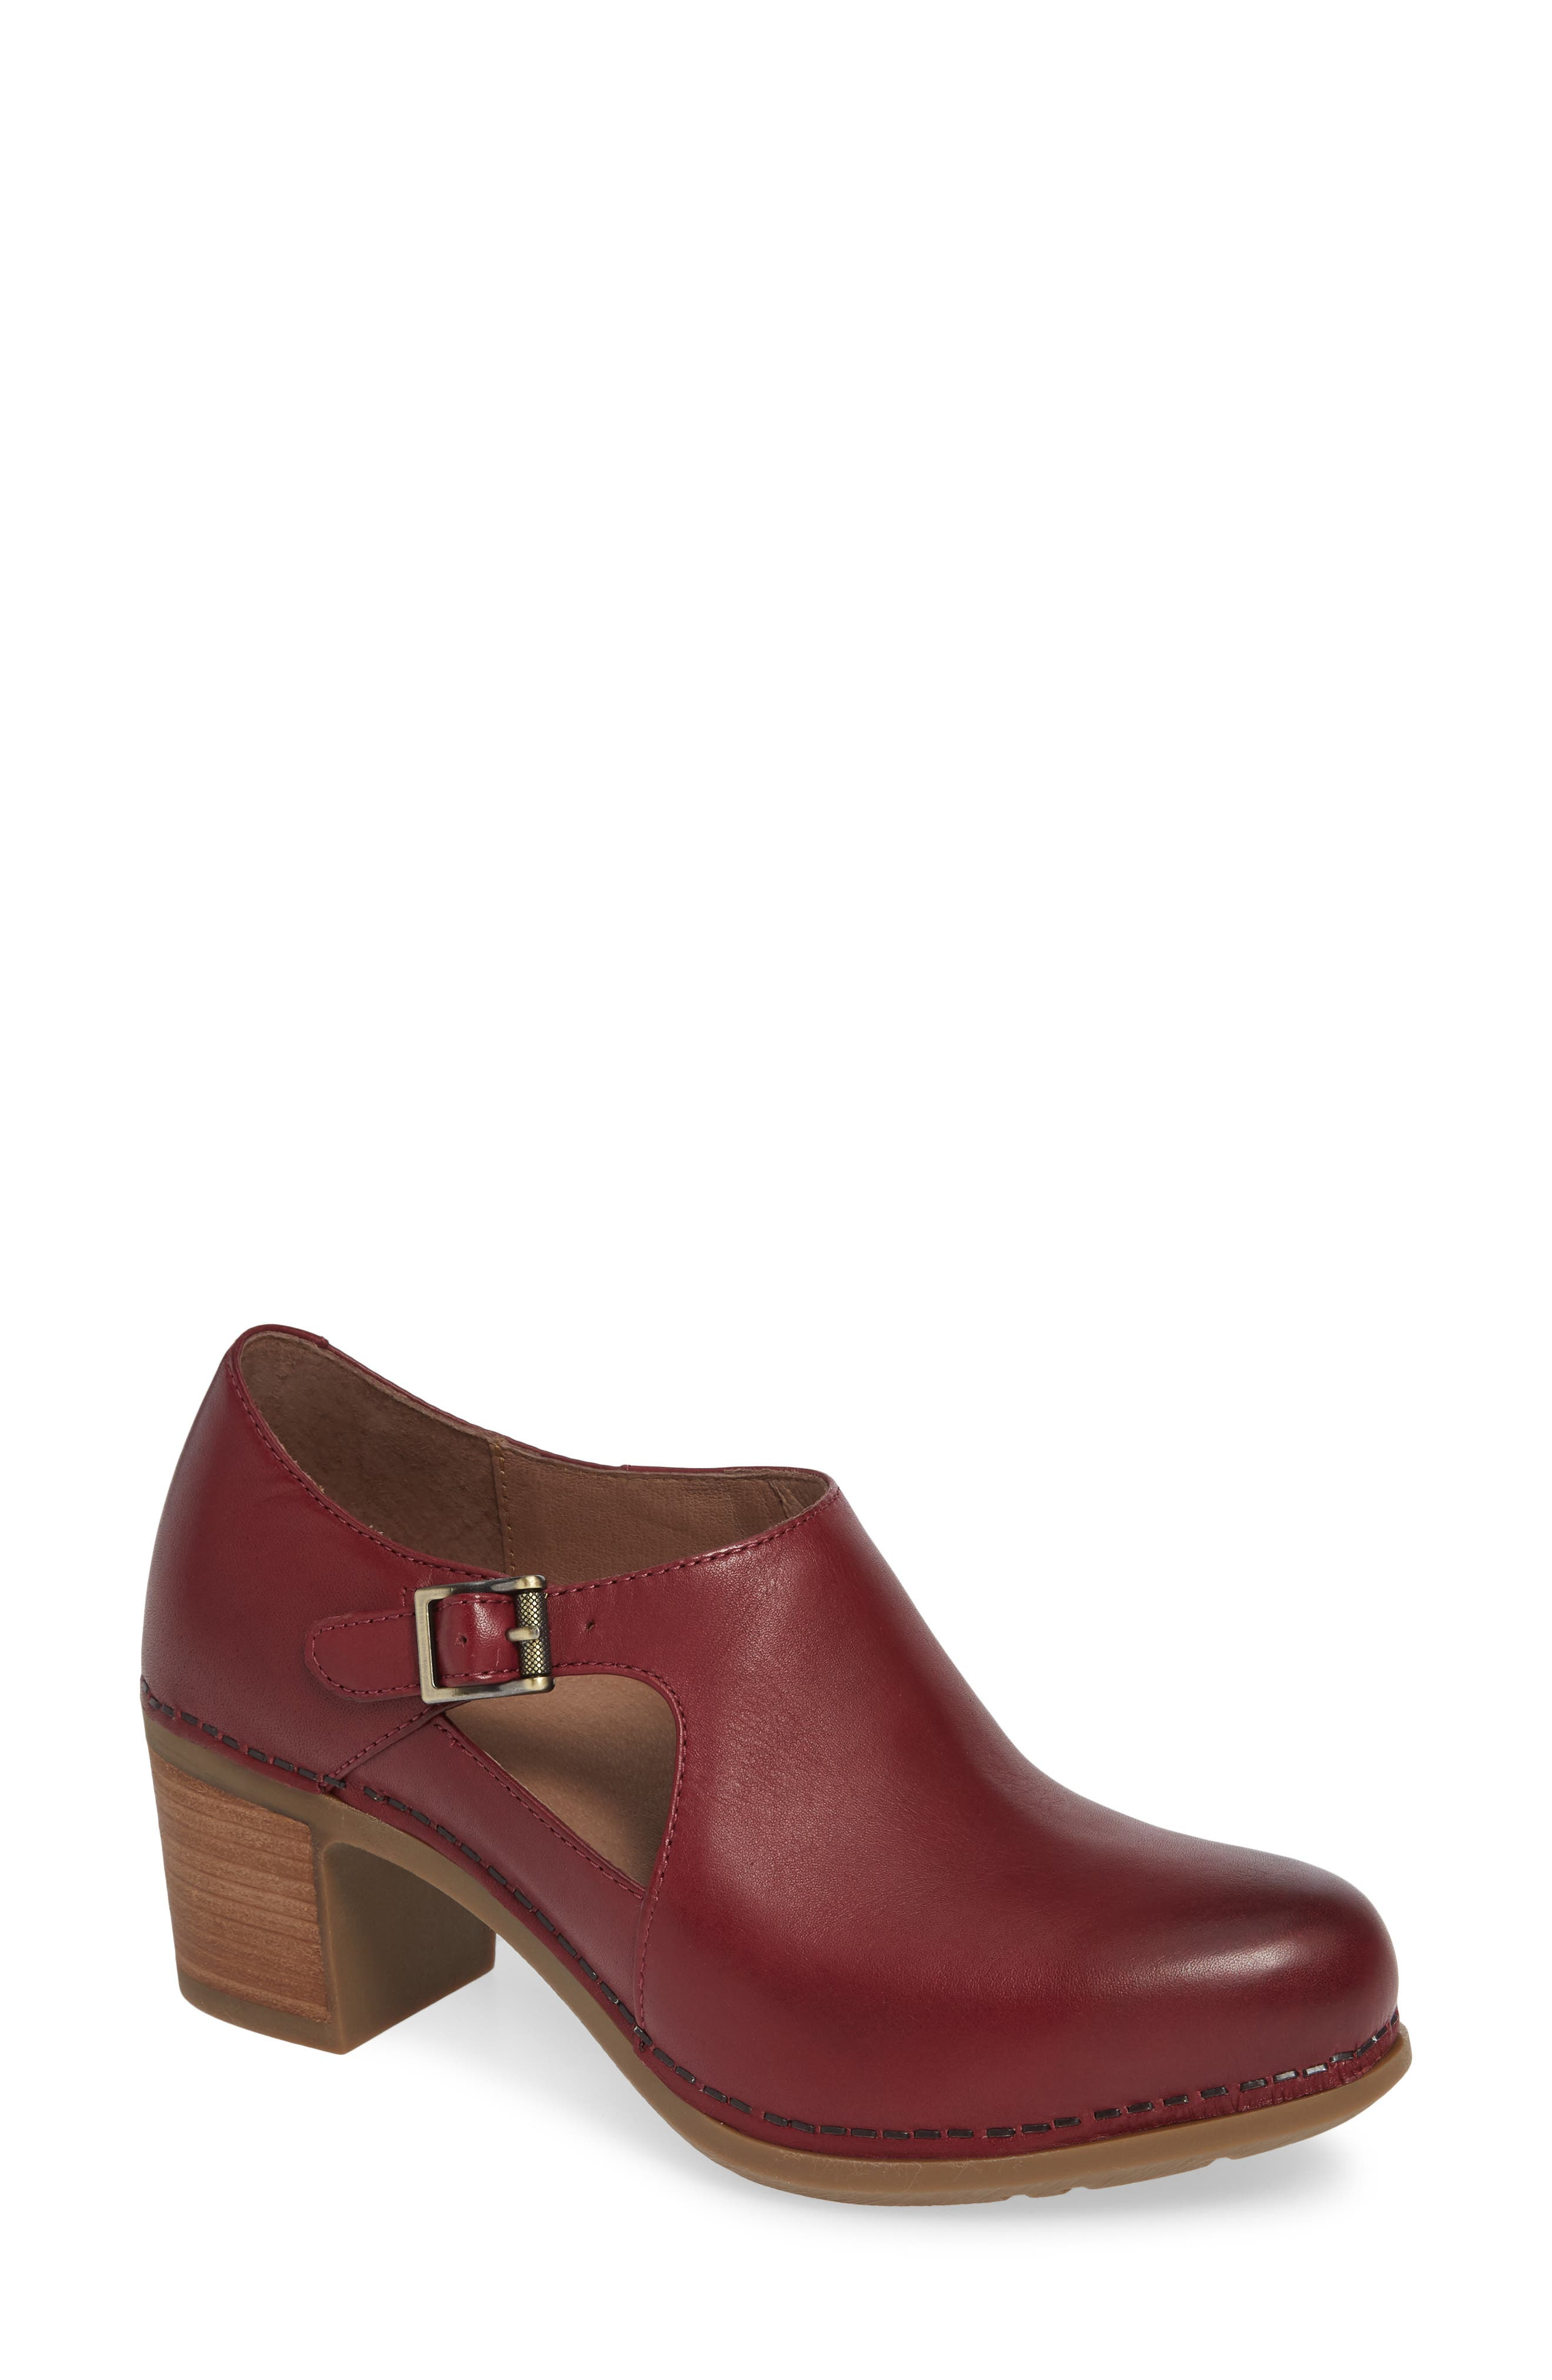 Hollie Bootie in Wine Burnished Leather